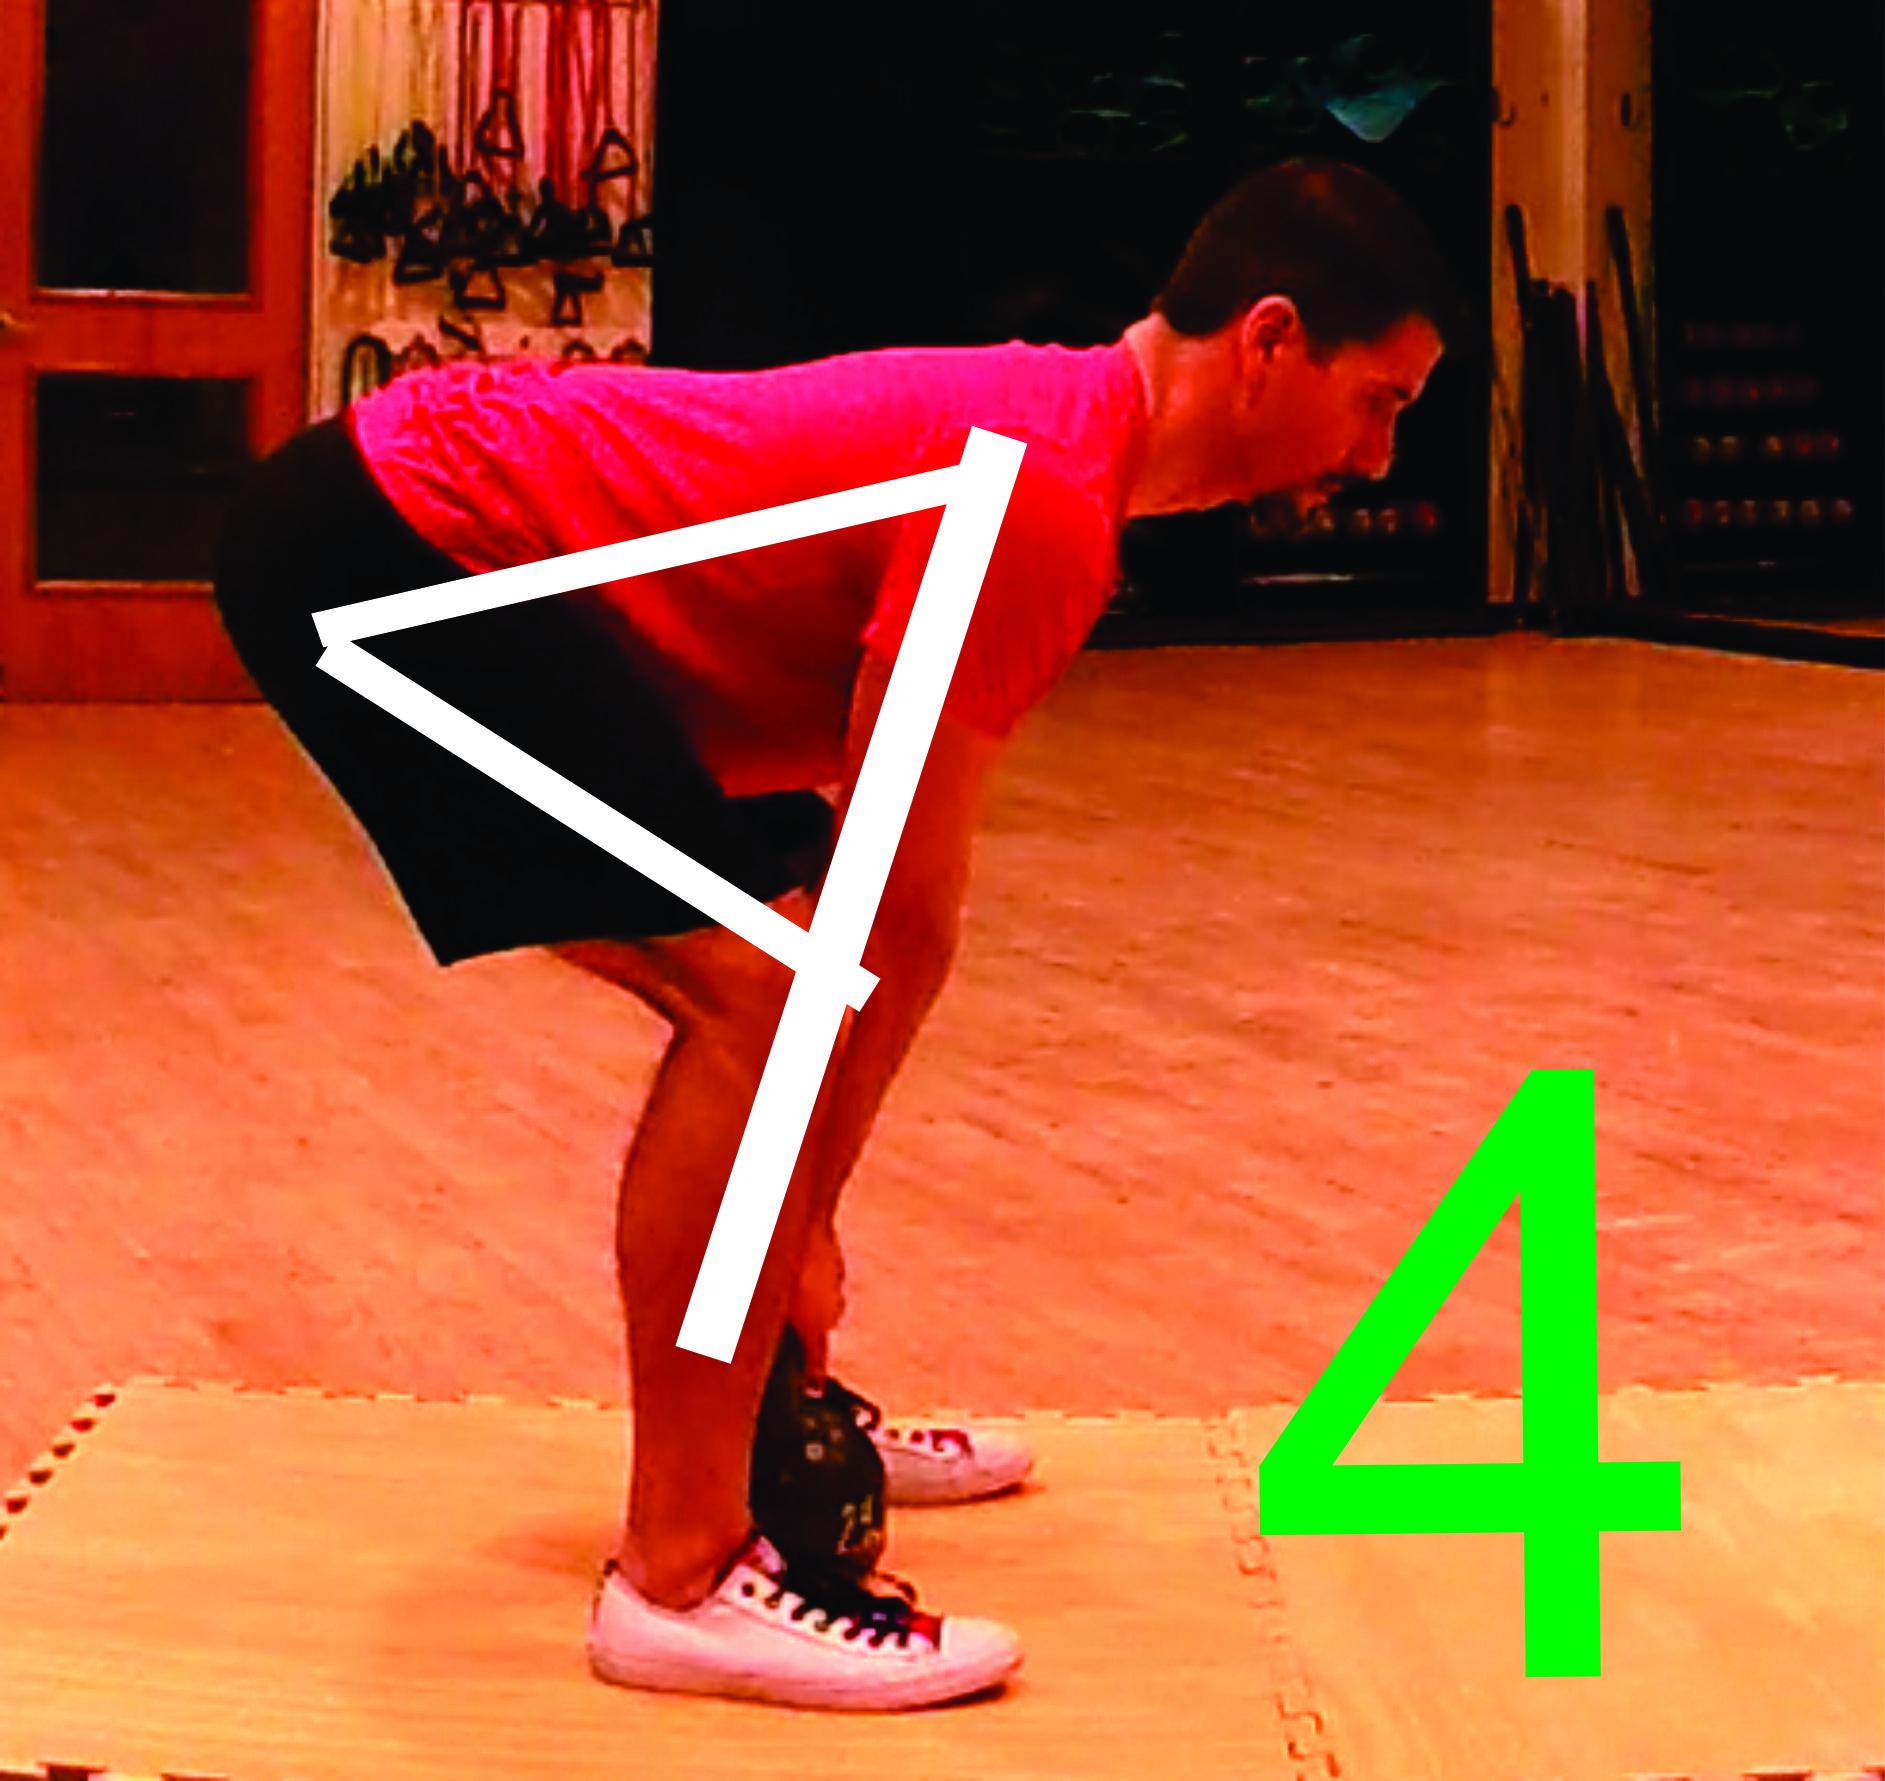 Figure 2 - The Figure 4 position of a deadlift